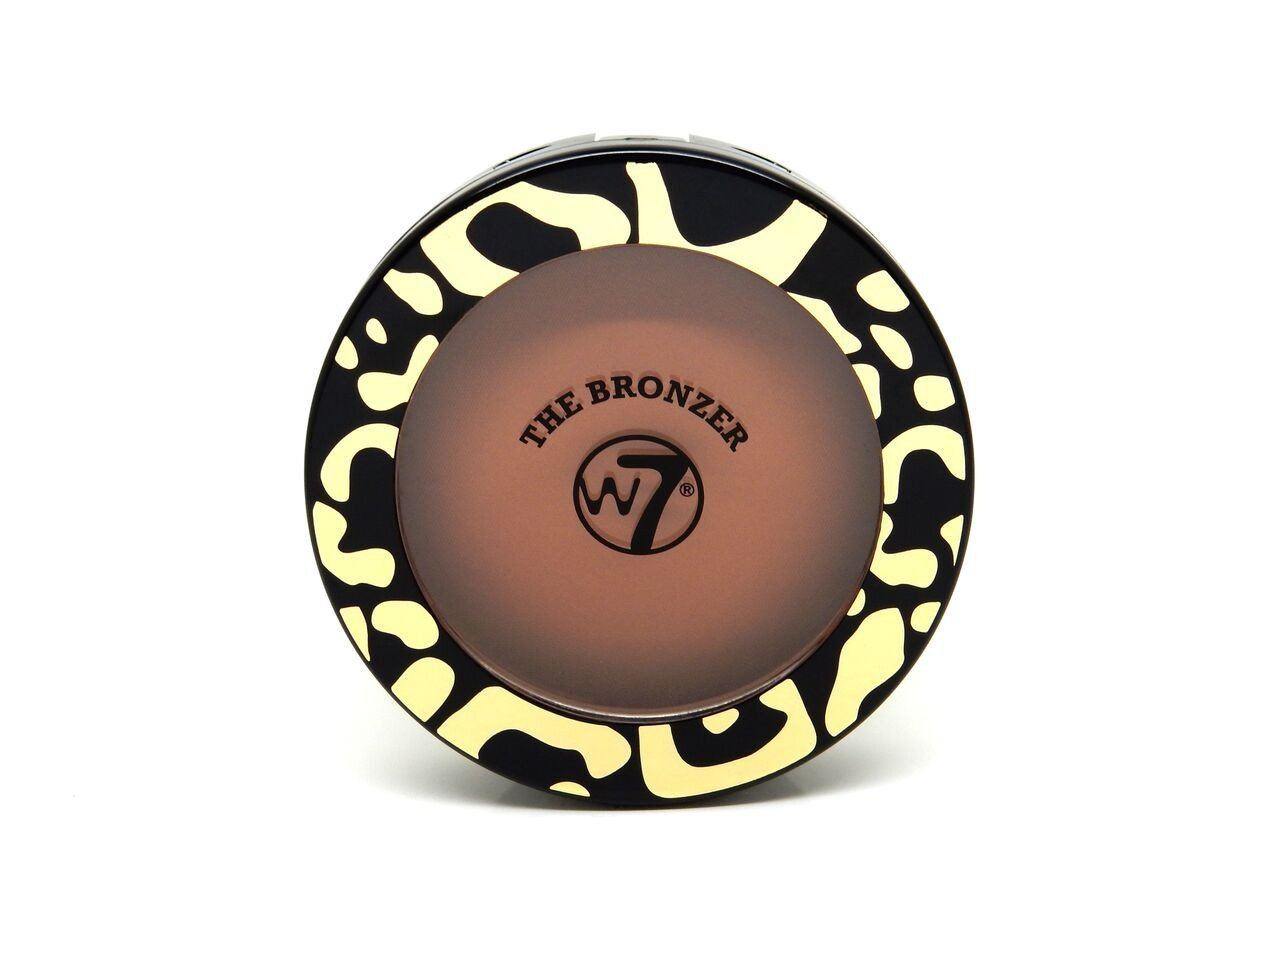 W7 The Bronzer Matte Compact image